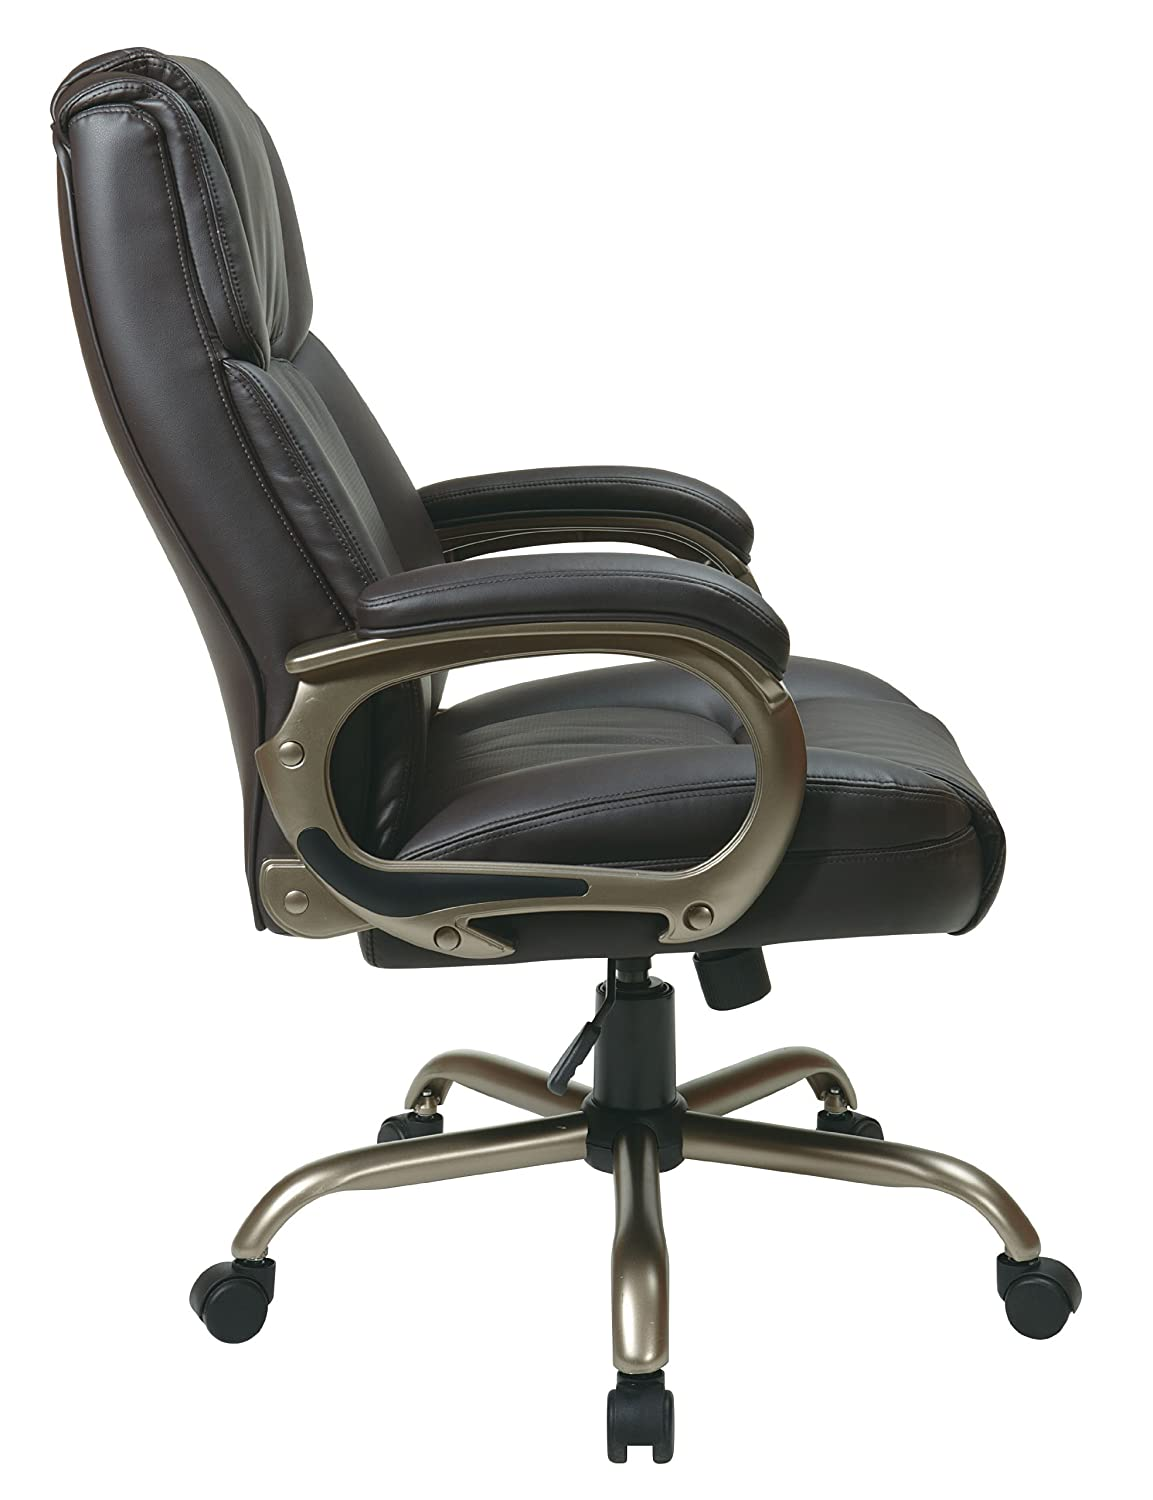 office chairs for heavy people skate ergonomic mesh back chair plus size up to 300 lbs 350